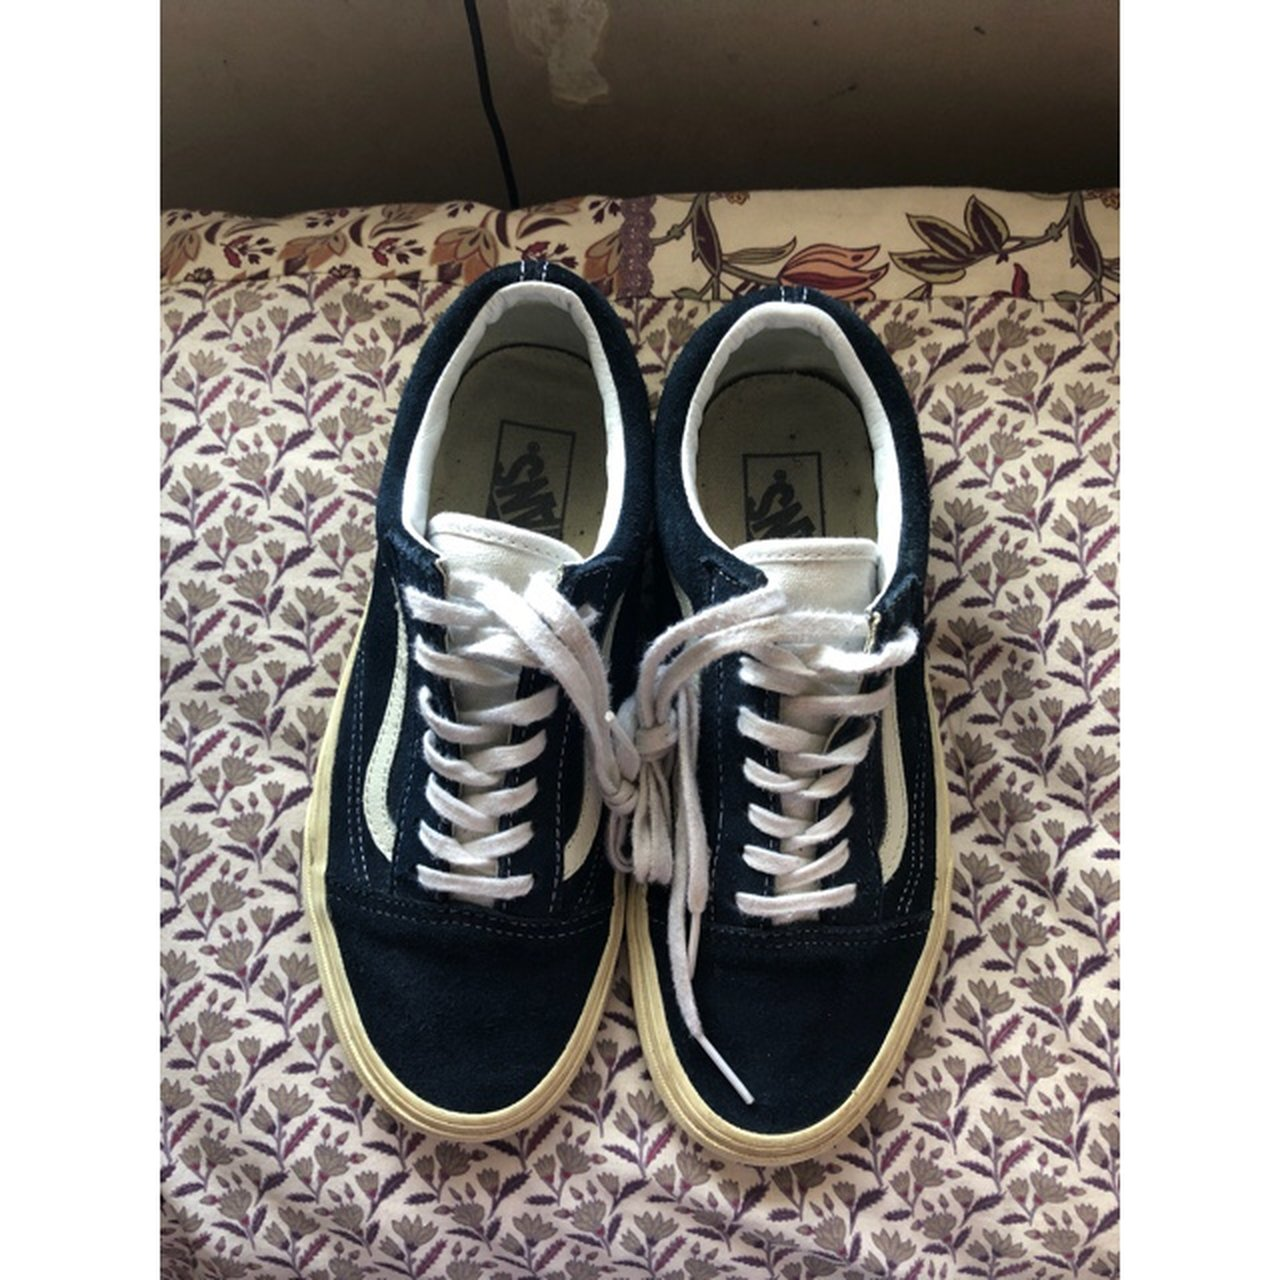 Navy suede old skool vans! Some scuffs on the back but been - Depop 7891fd1f7